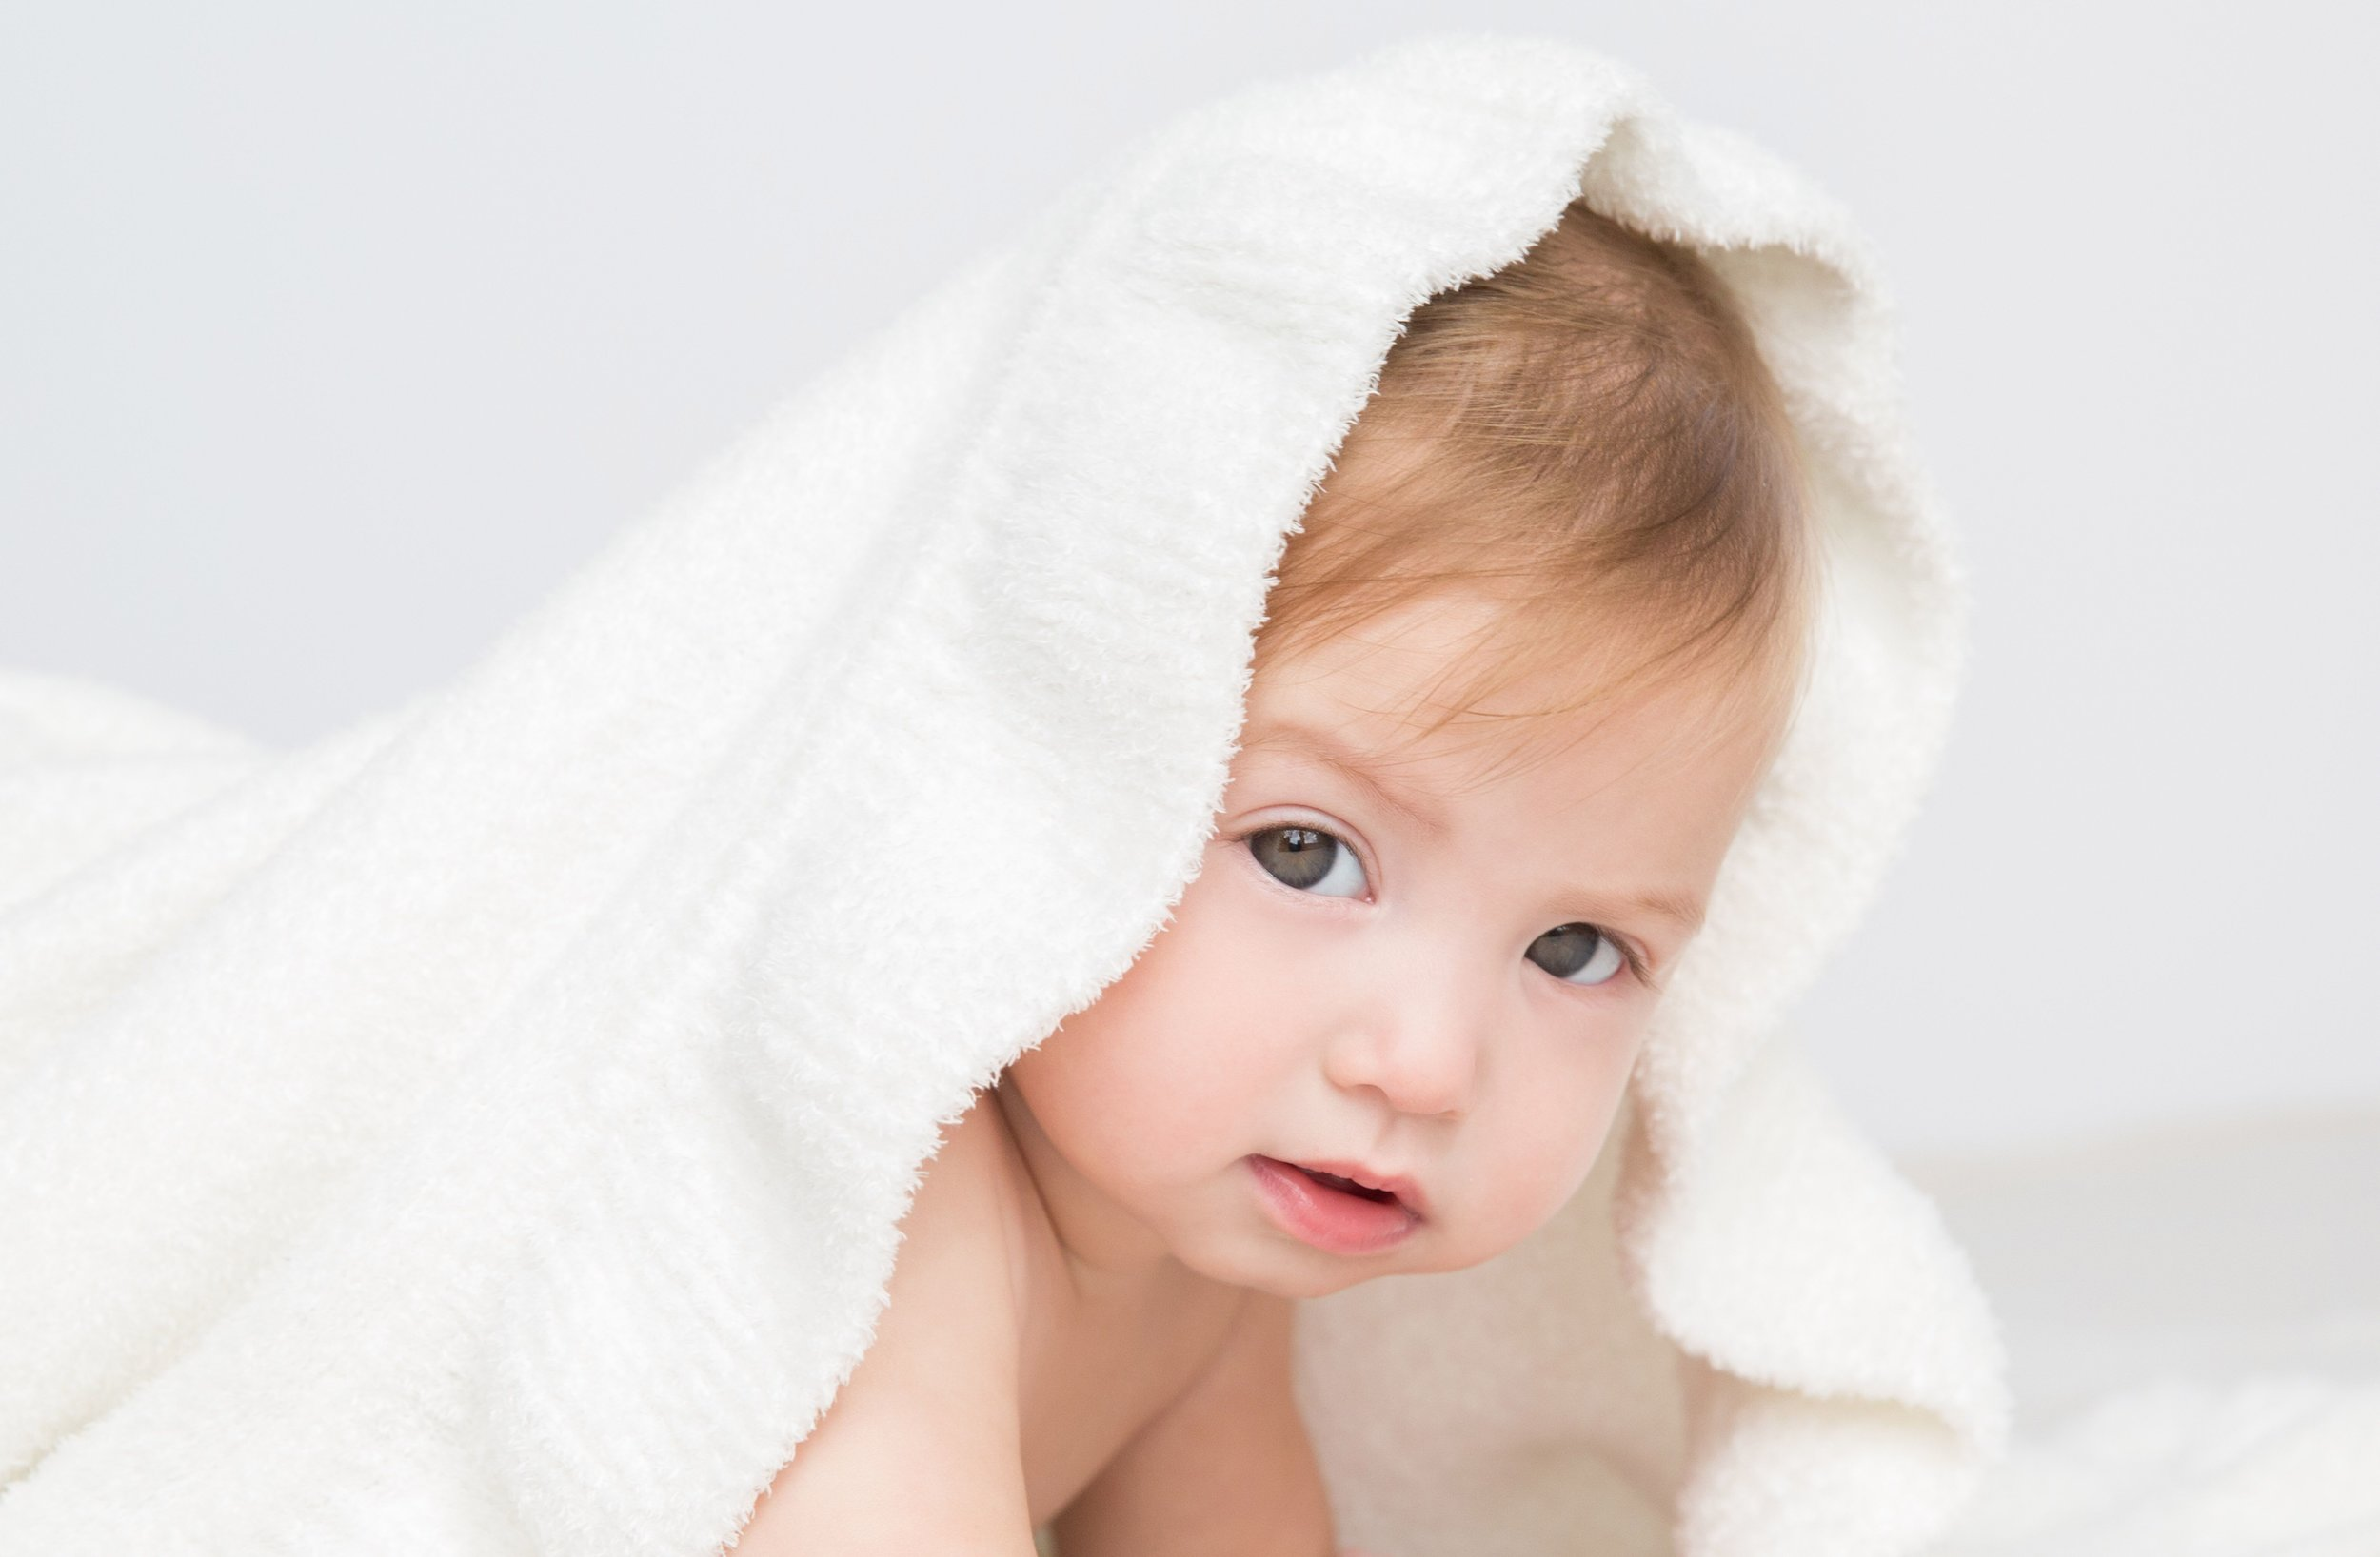 baby blankets-receiving blankets-softest baby blankets-best price baby blankets-piper jade kids clothing-Costa Mesa-California-92627-best online children's clothing store